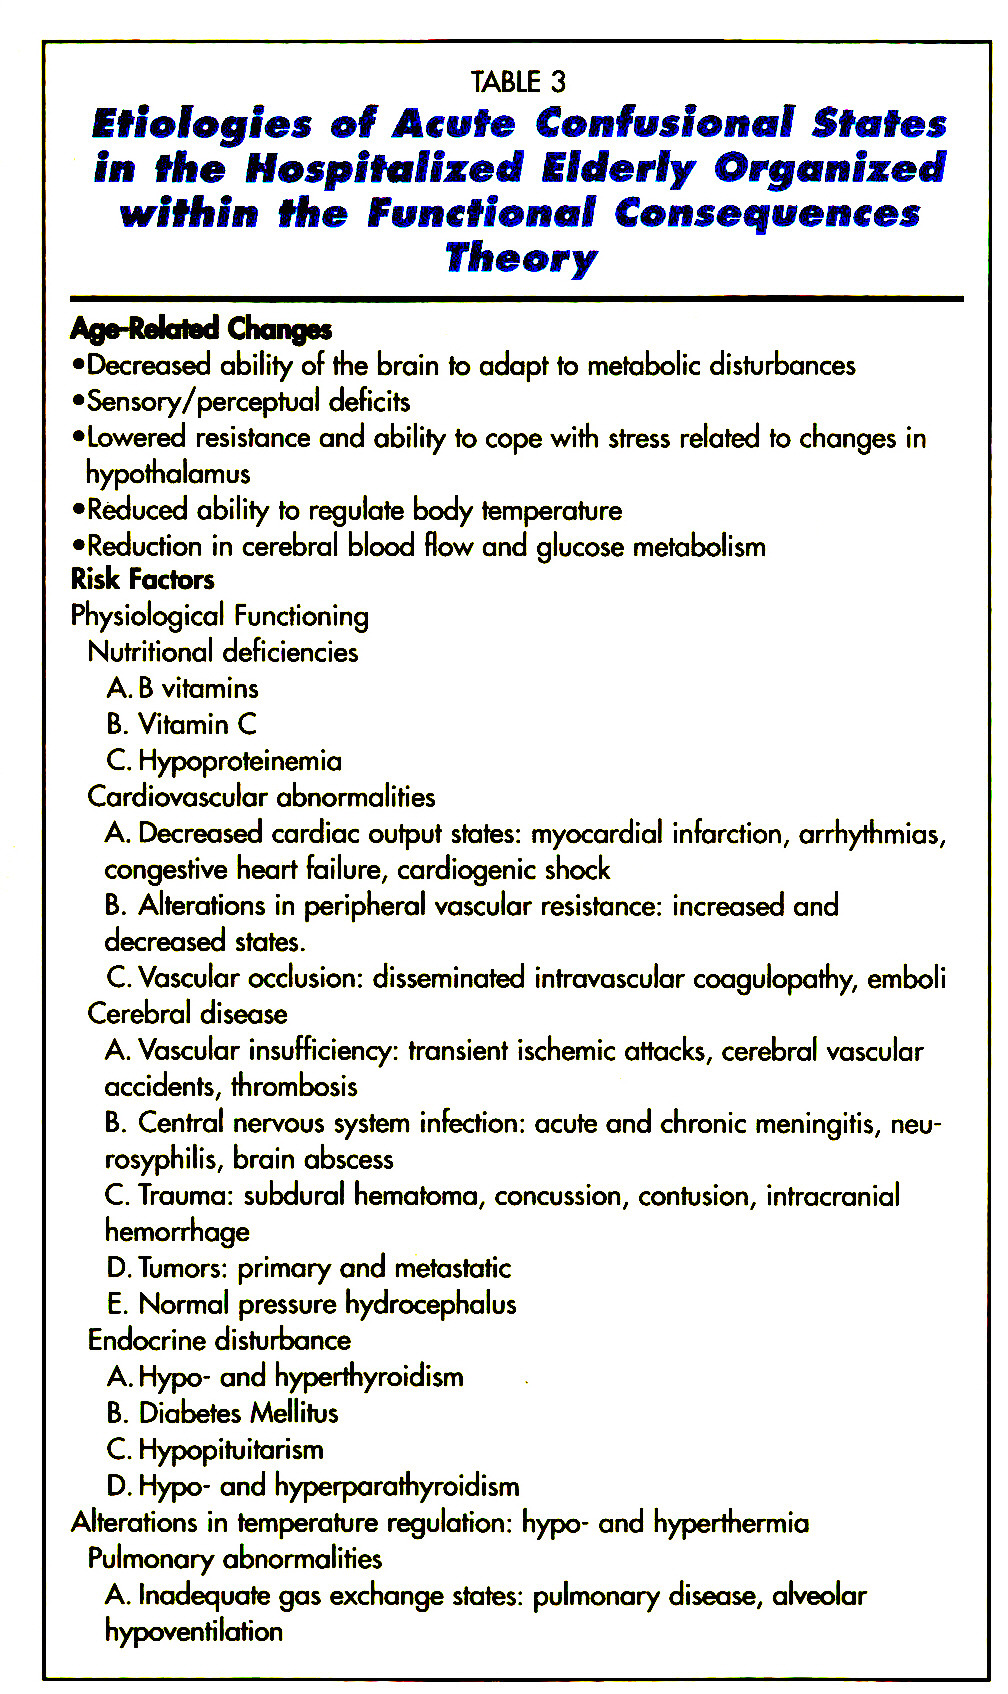 TABLE 3Etiologies at Acute Confusional States in the Hospitalized Elderly Organized within the Functional Consequences Theory